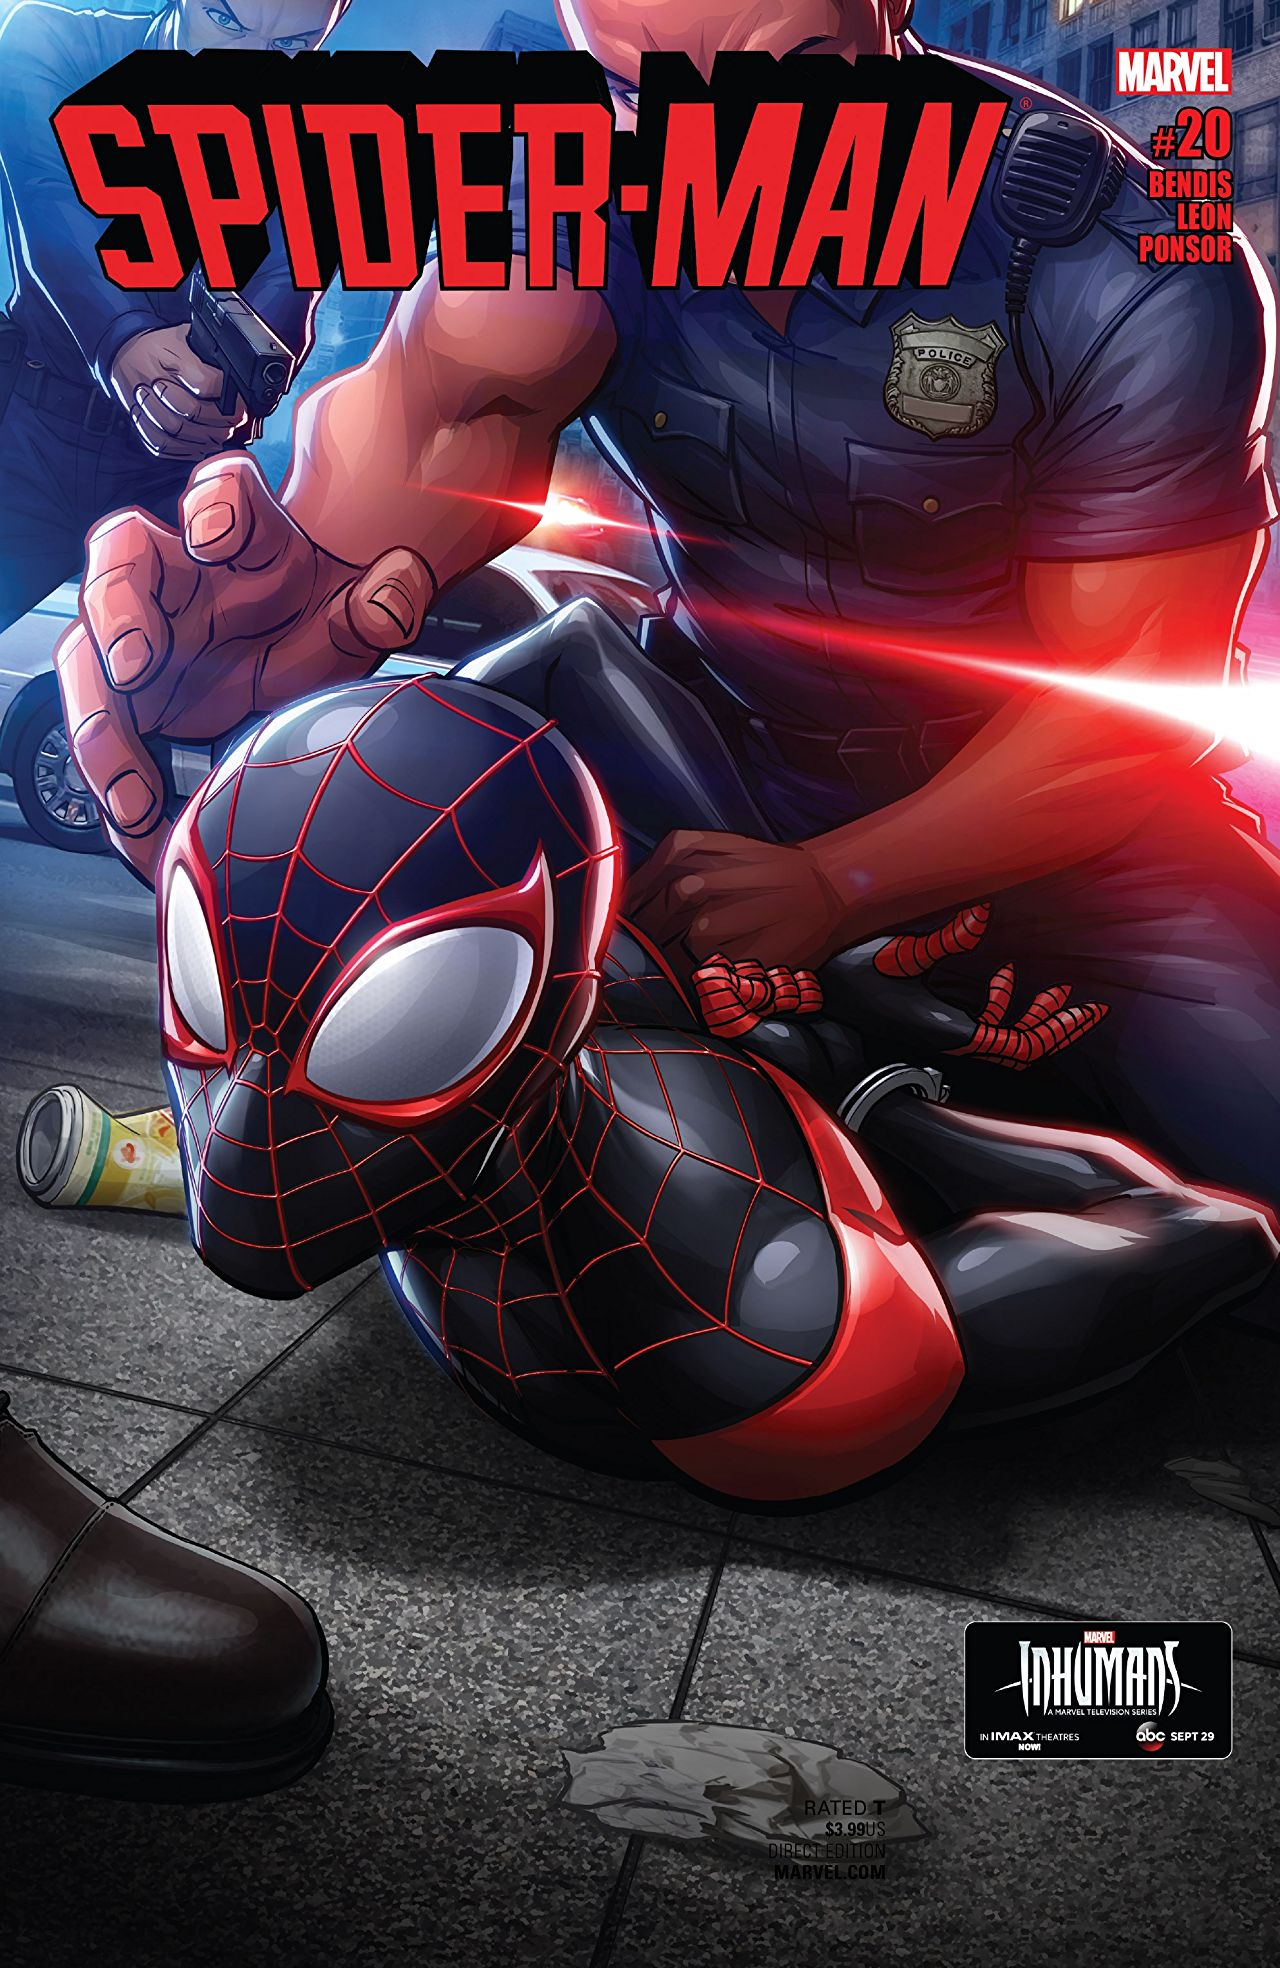 Spider-Man #20 Review